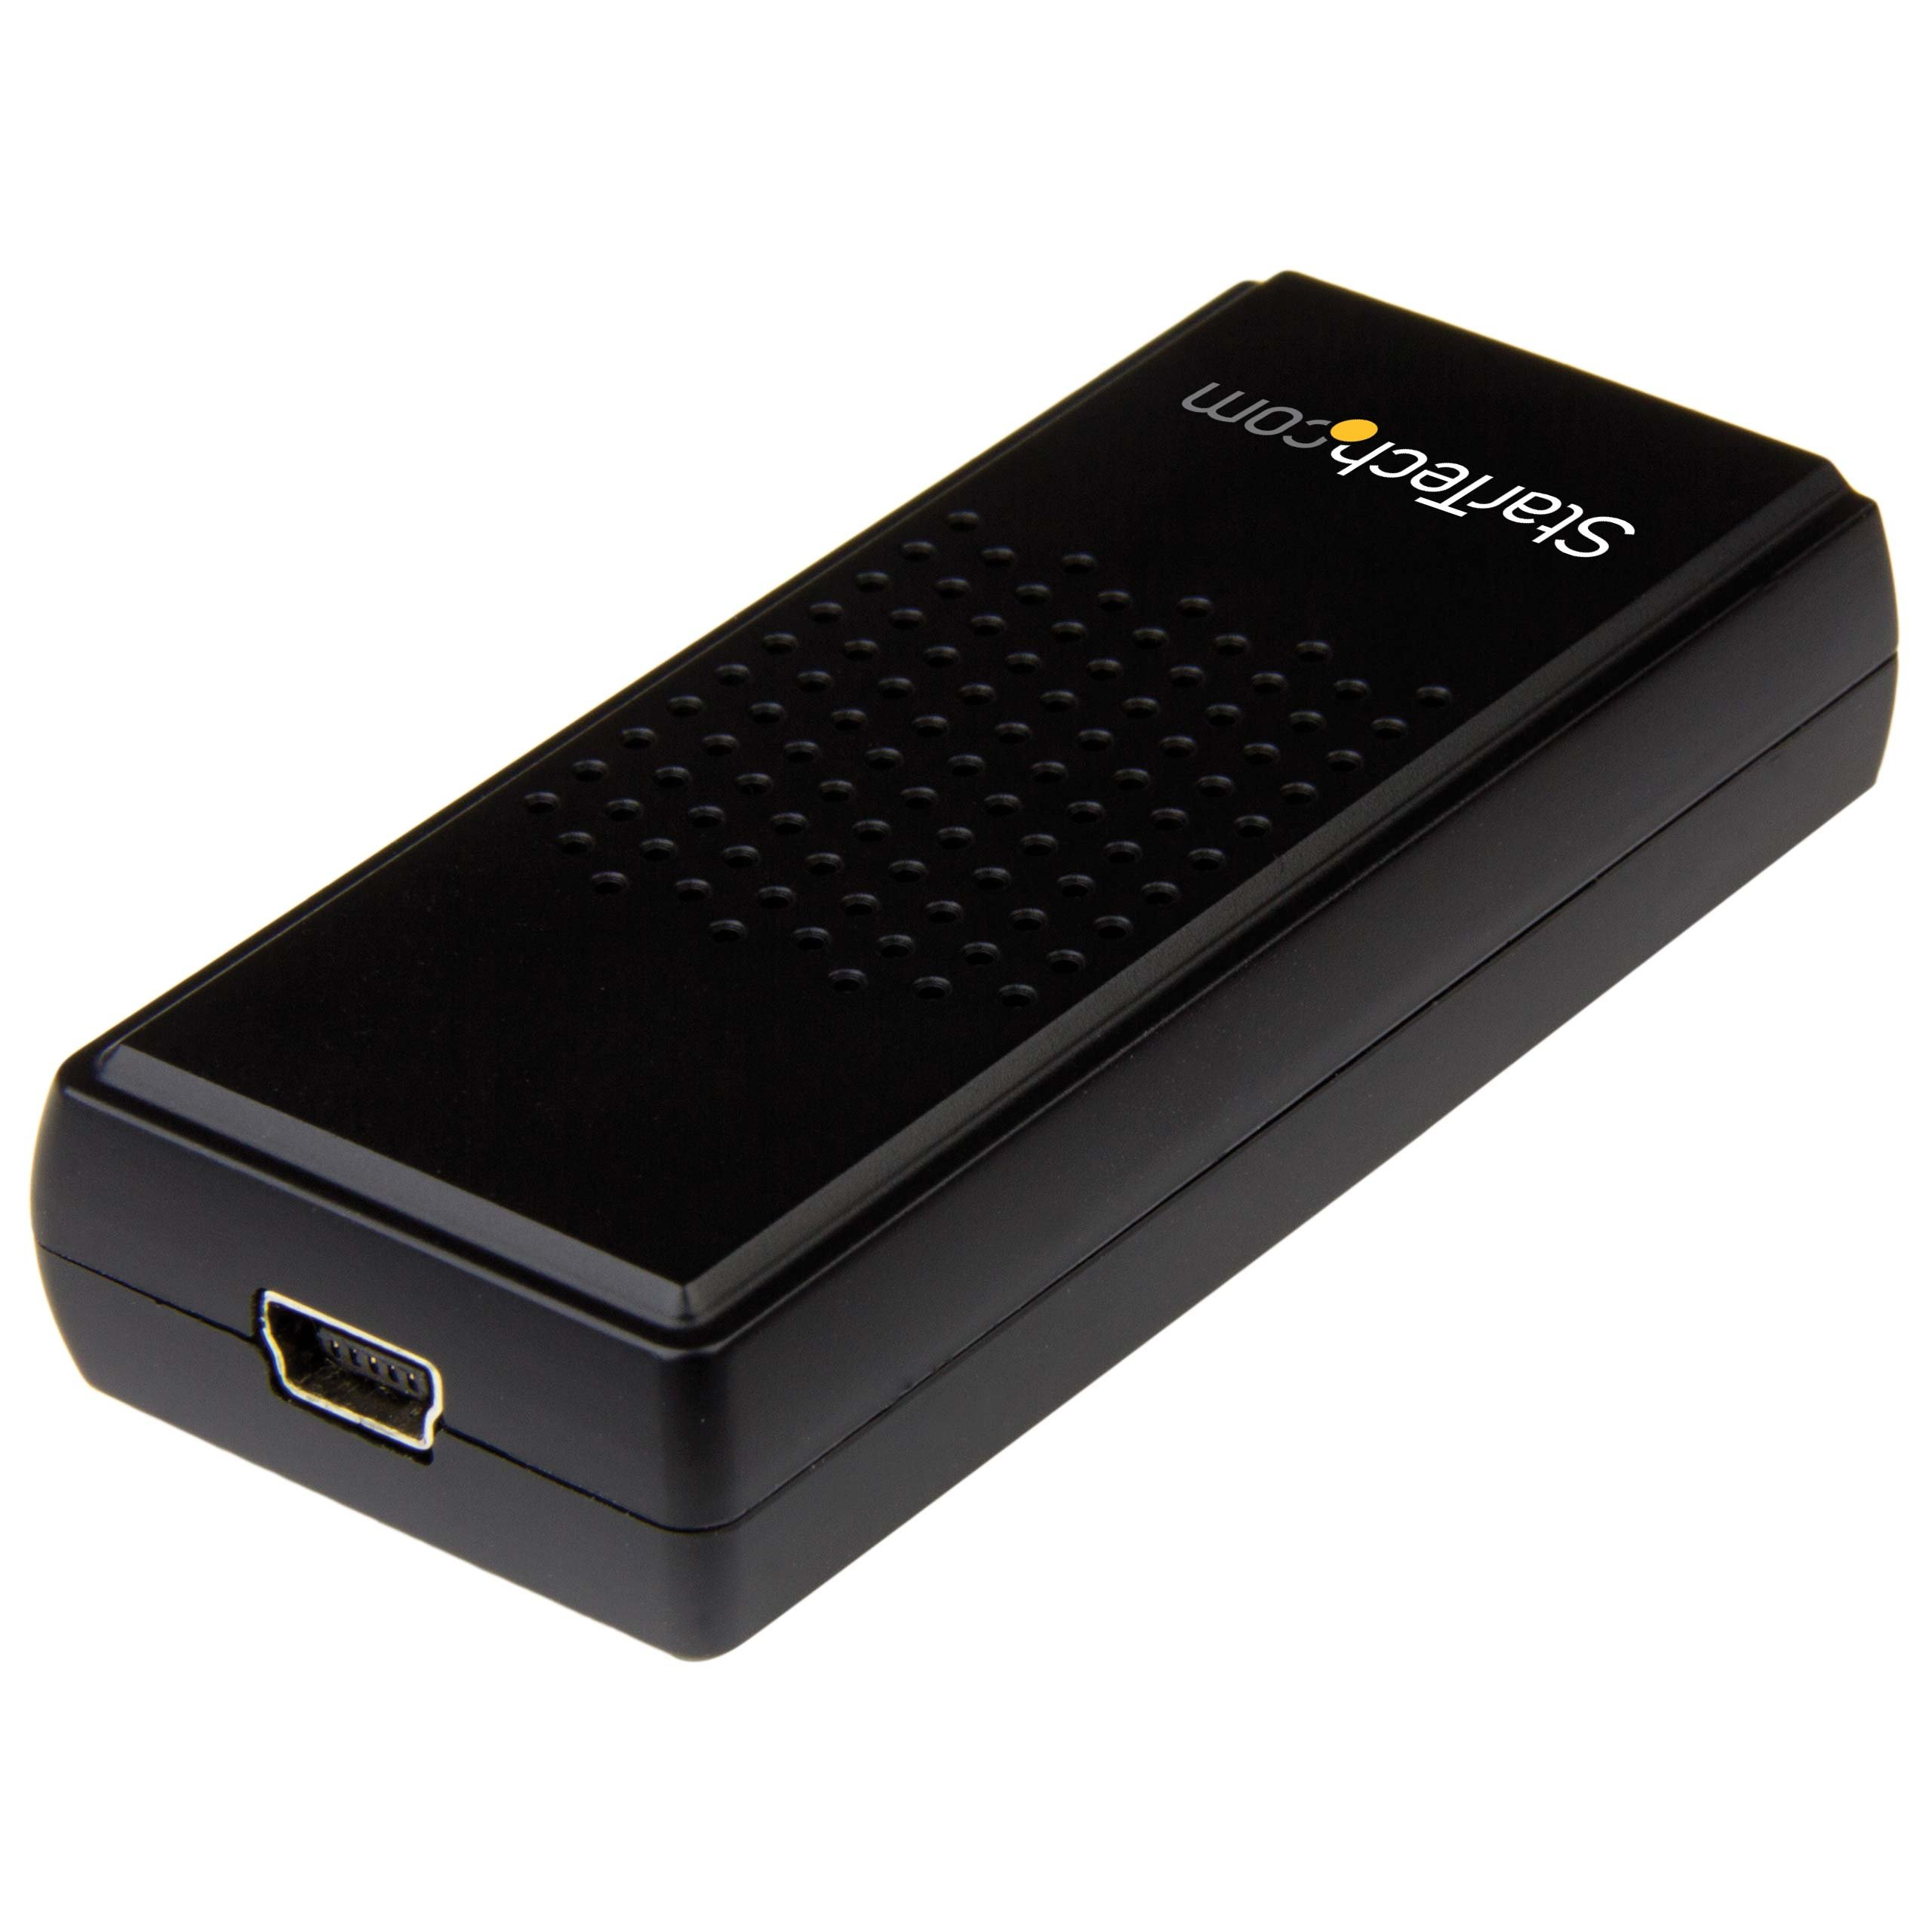 Startech.com Usb 2.0 Capture Device For Hdmi Video - Compact External Capture Card - 1080p - Functions: Video Capturing, Video Recording, Video Encoding, Video Conversion, Video Streaming (usb2hdcapm)